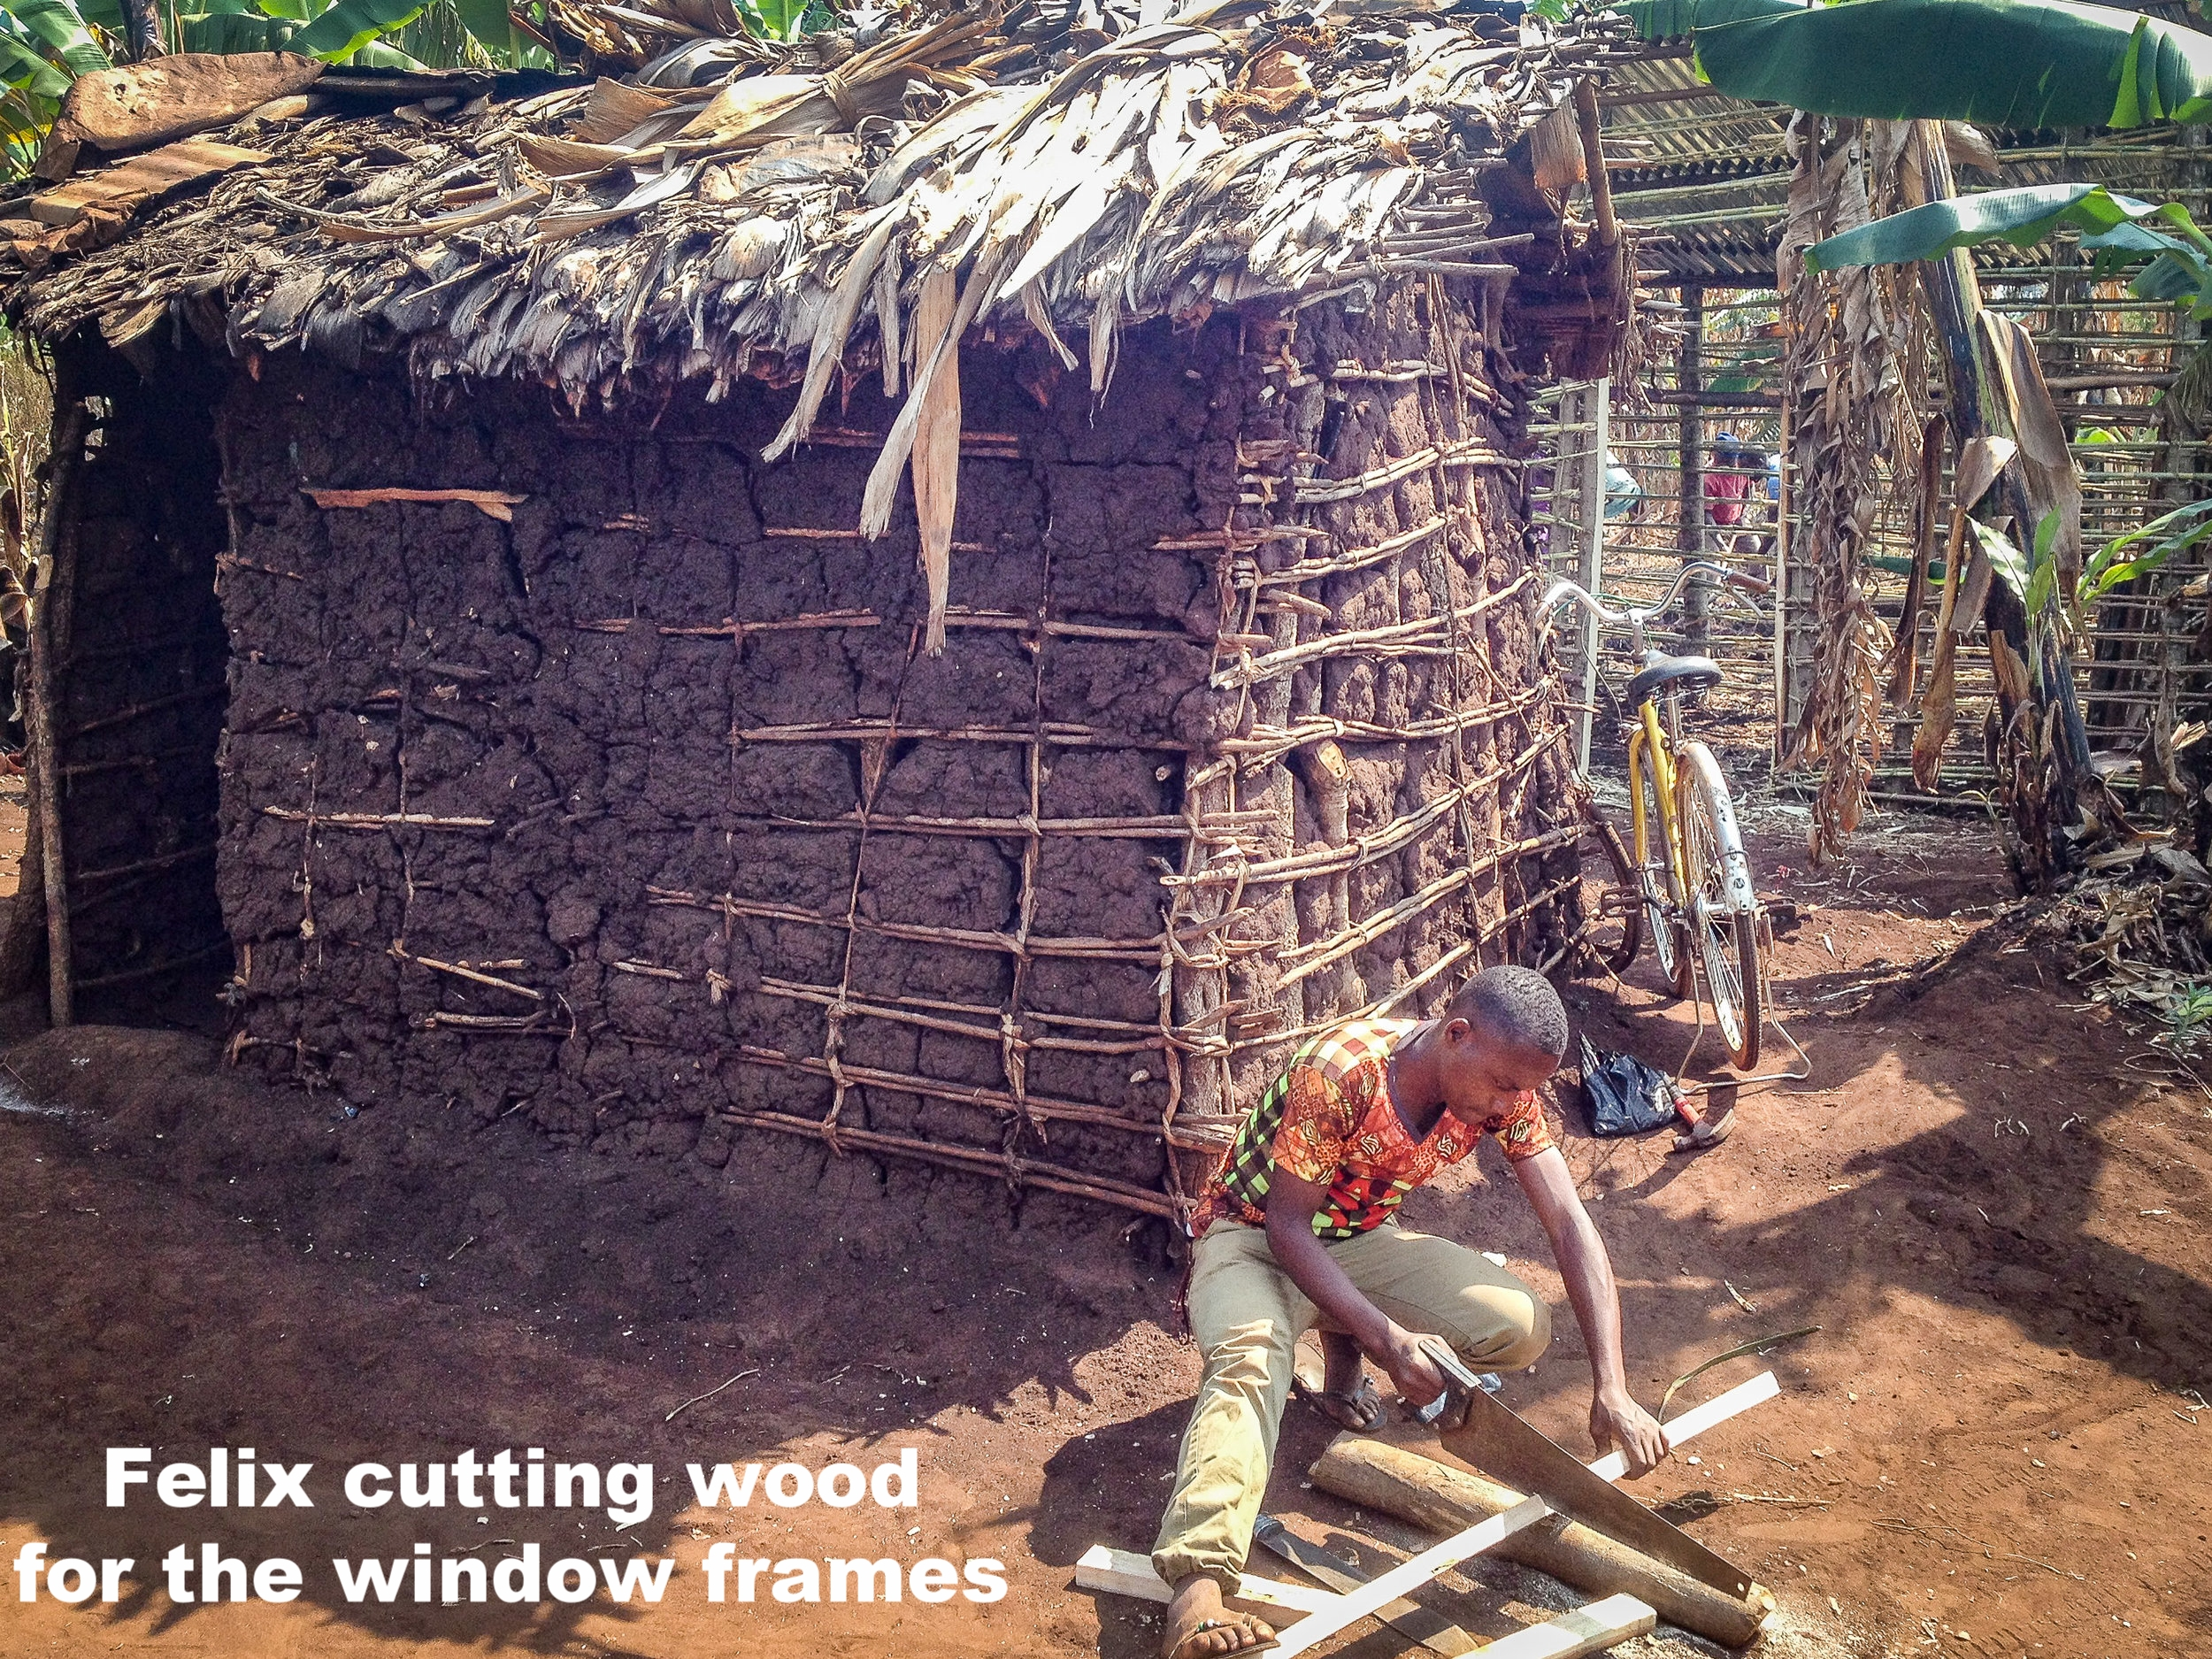 4. Our youth Felix cutting timber for window frames.jpg